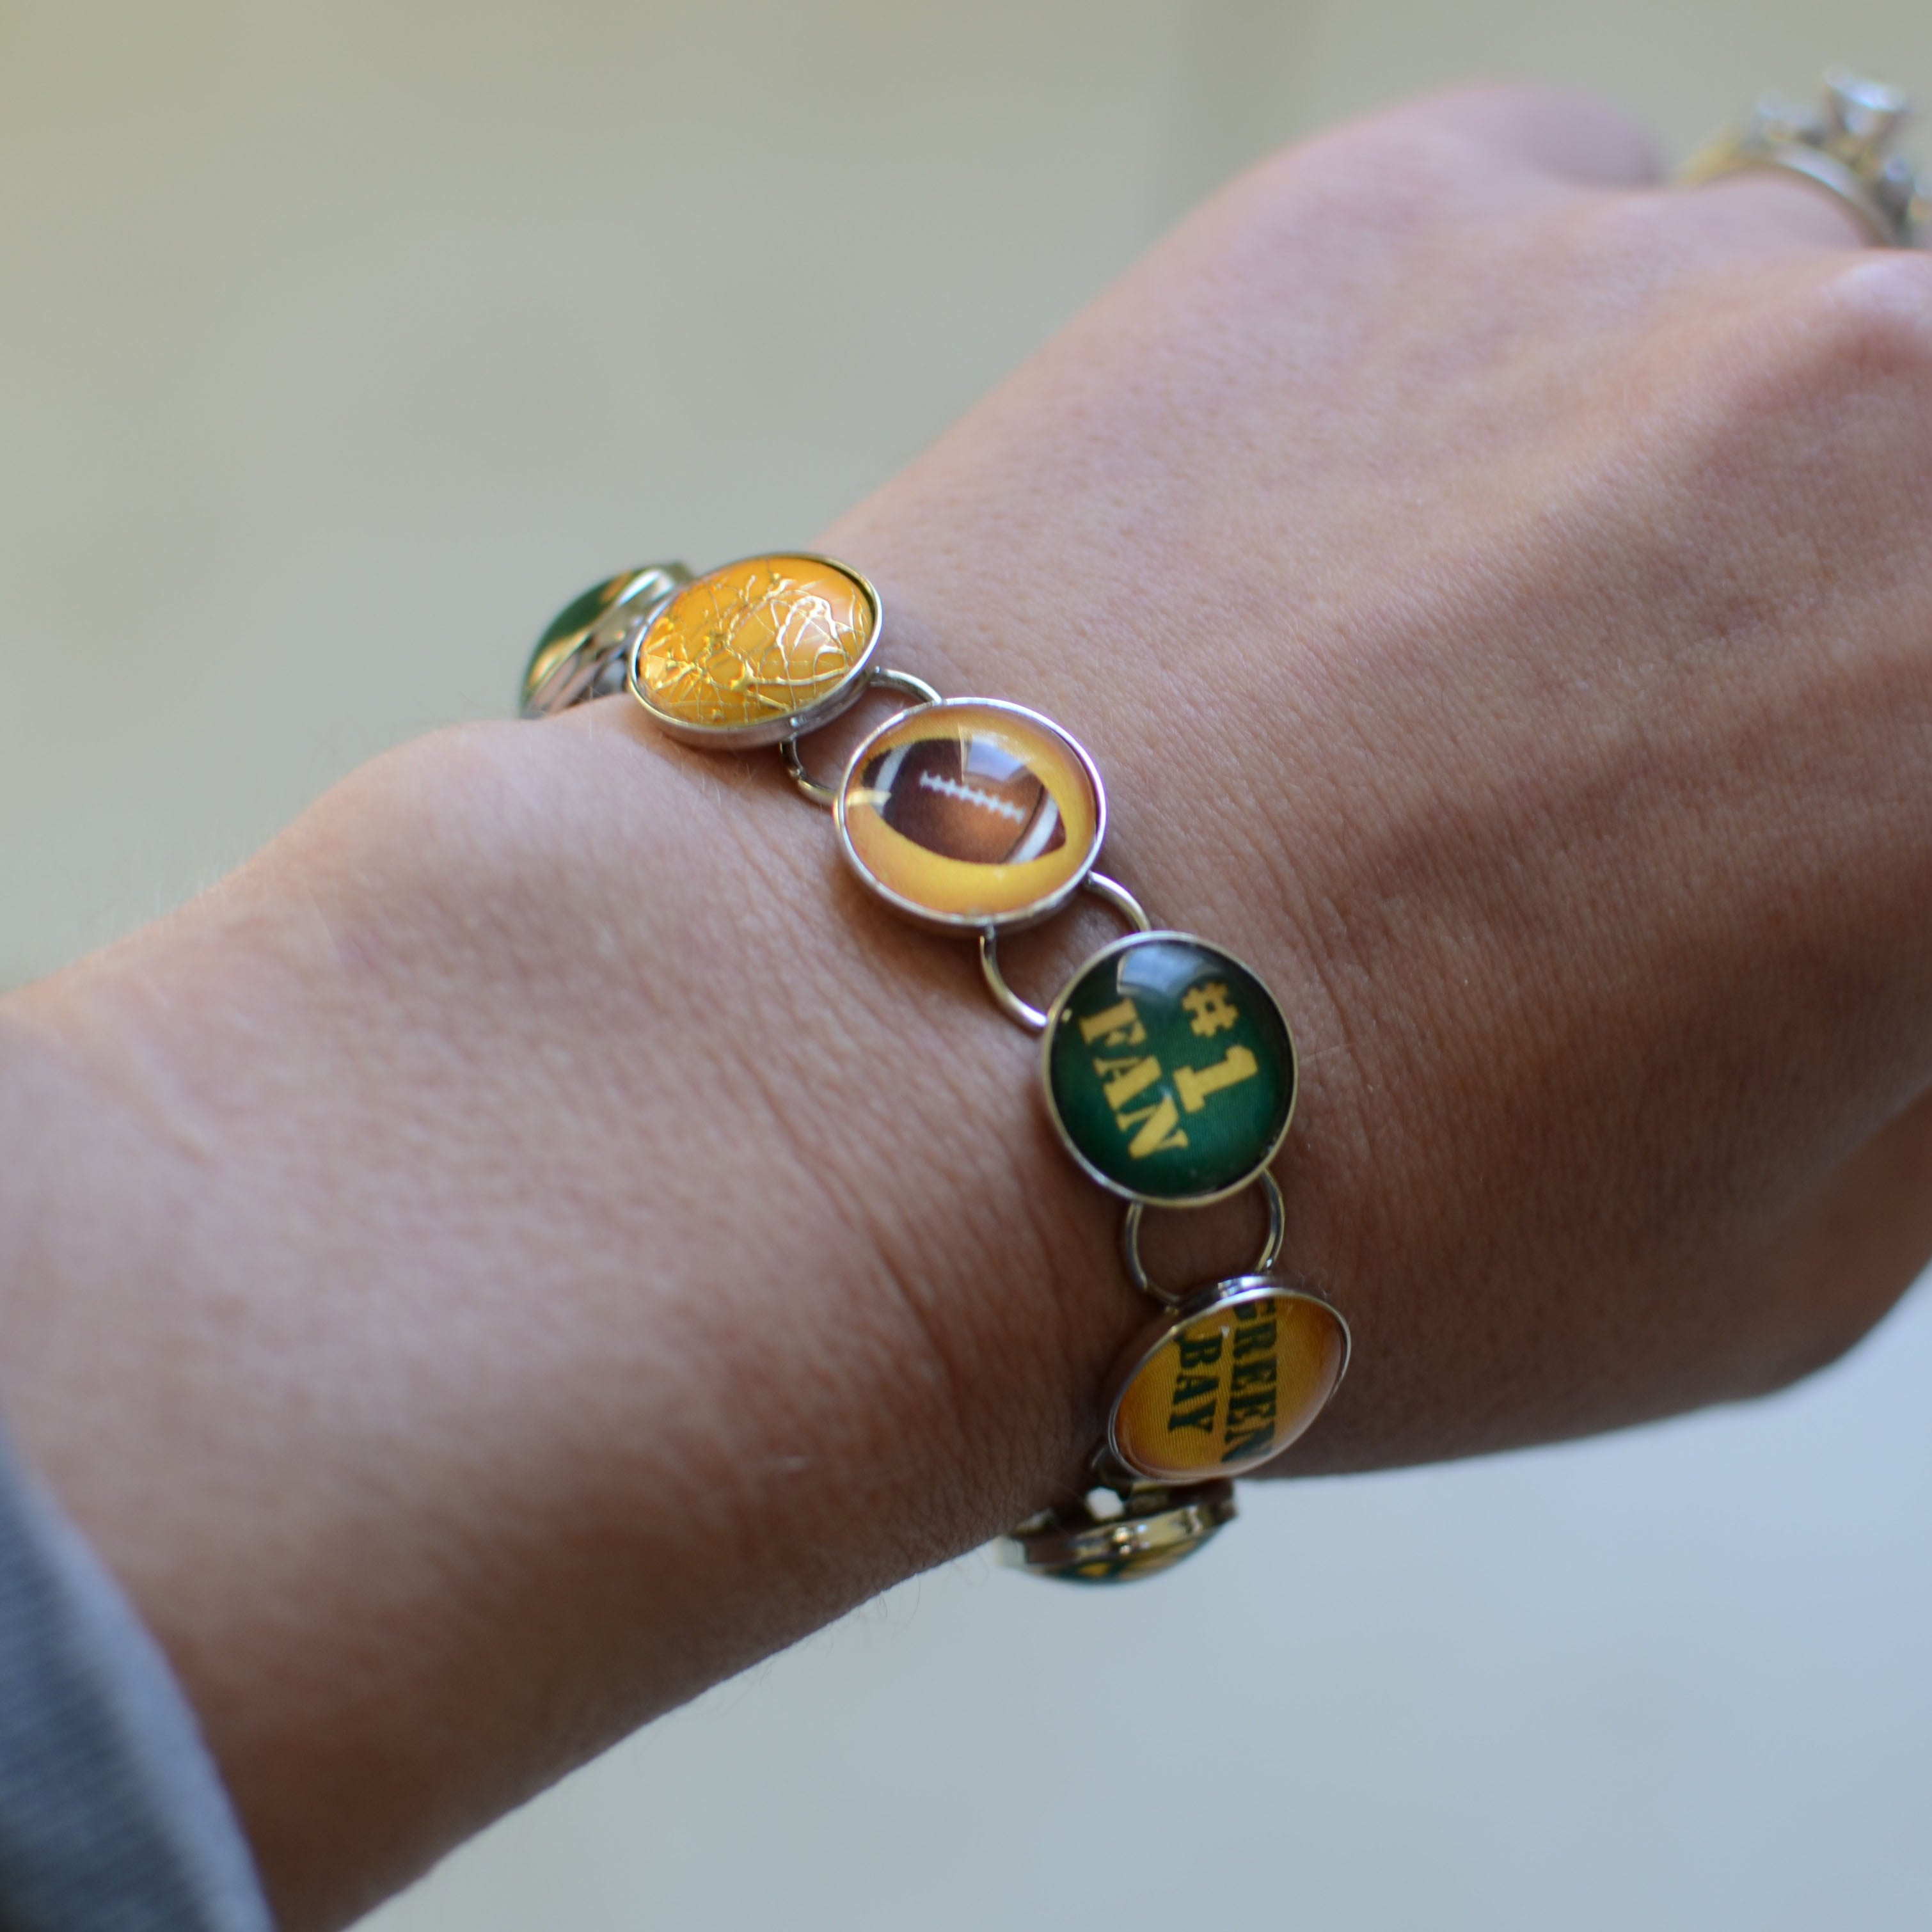 Green Bay Packers Copper Alloy Bracelet with Team Glass Charm